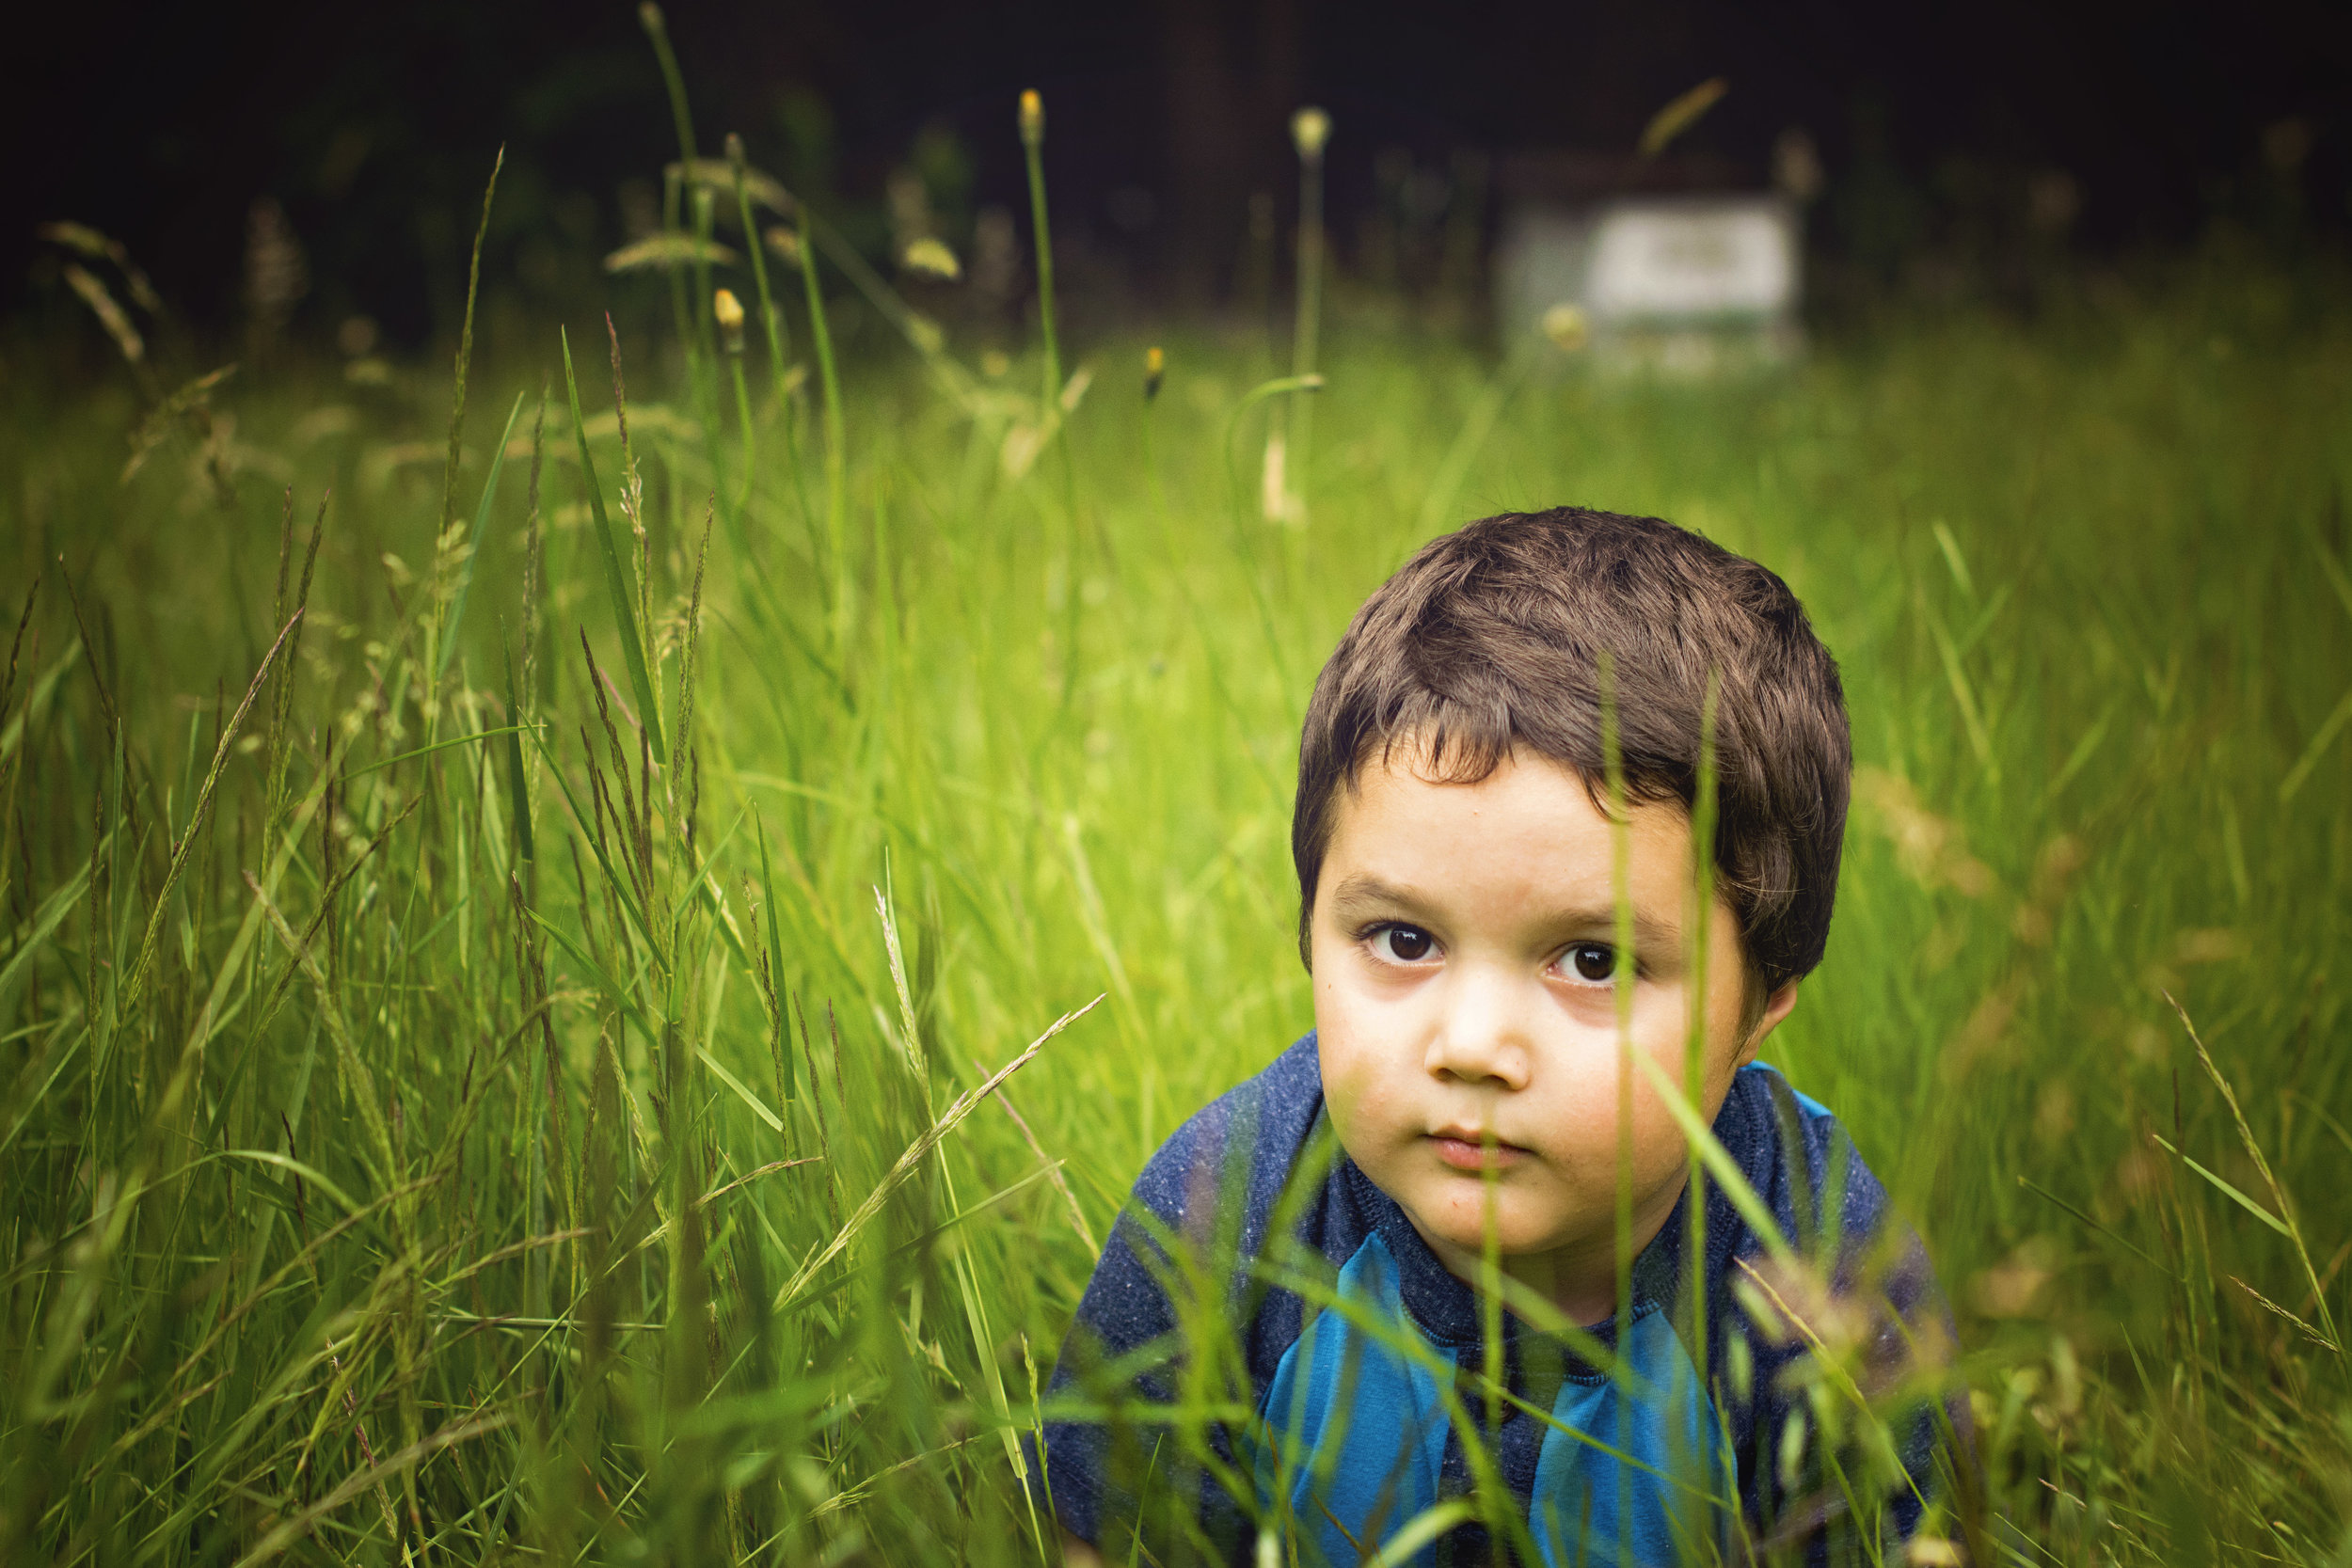 There is a little monkey in the grass...a serious one! lol  Thanks for checking out my blog! Hope you enjoyed checking out these two cuties!